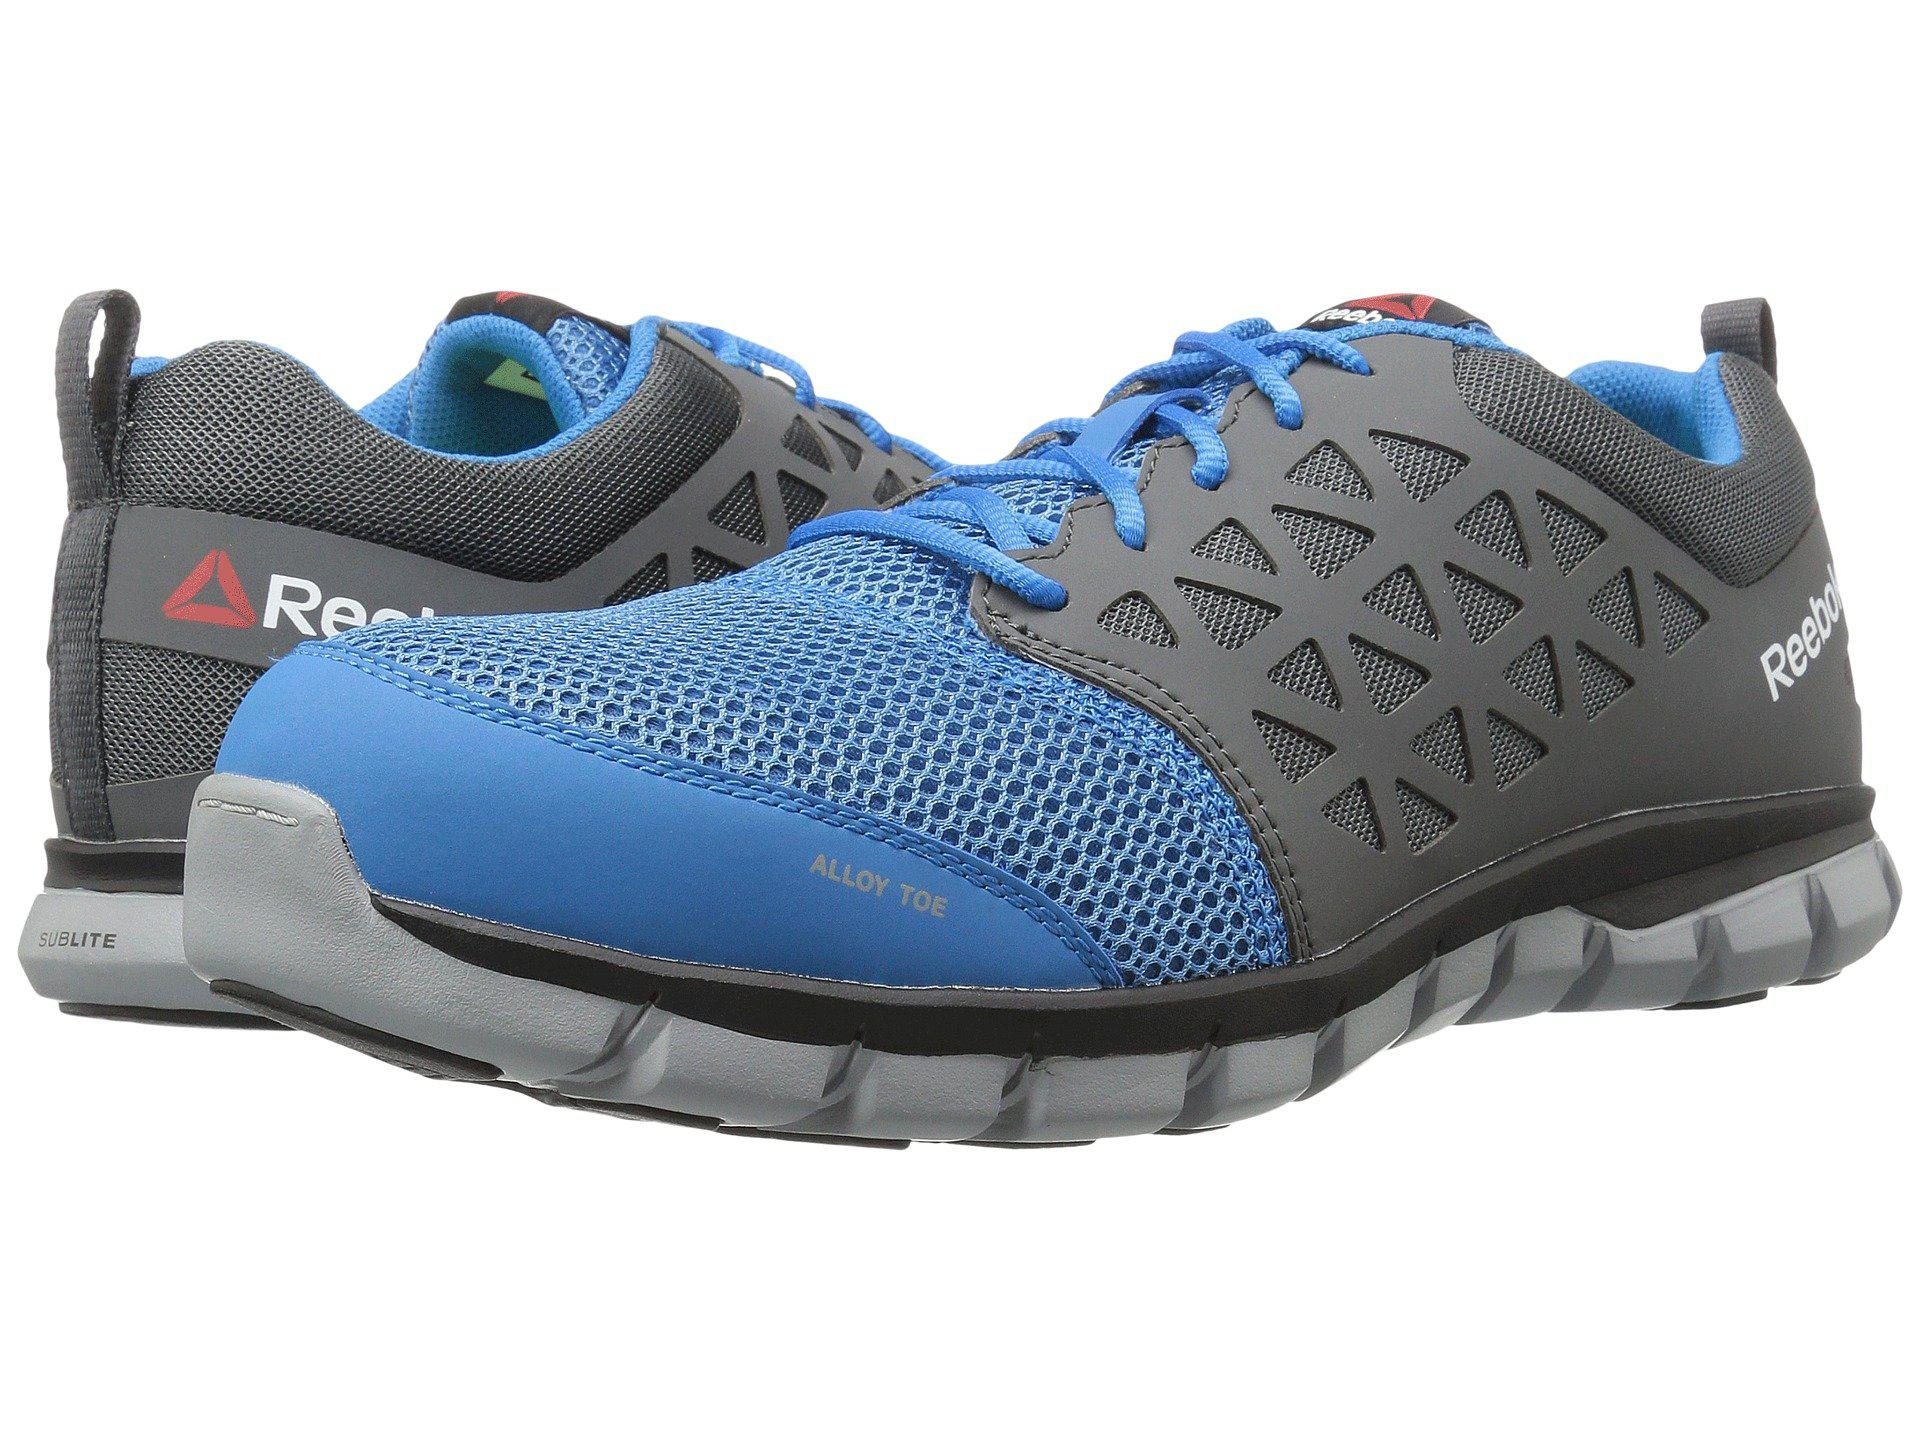 e9d92a03ee8 Lyst - Reebok Sublite Cushion Work for Men - Save 20%